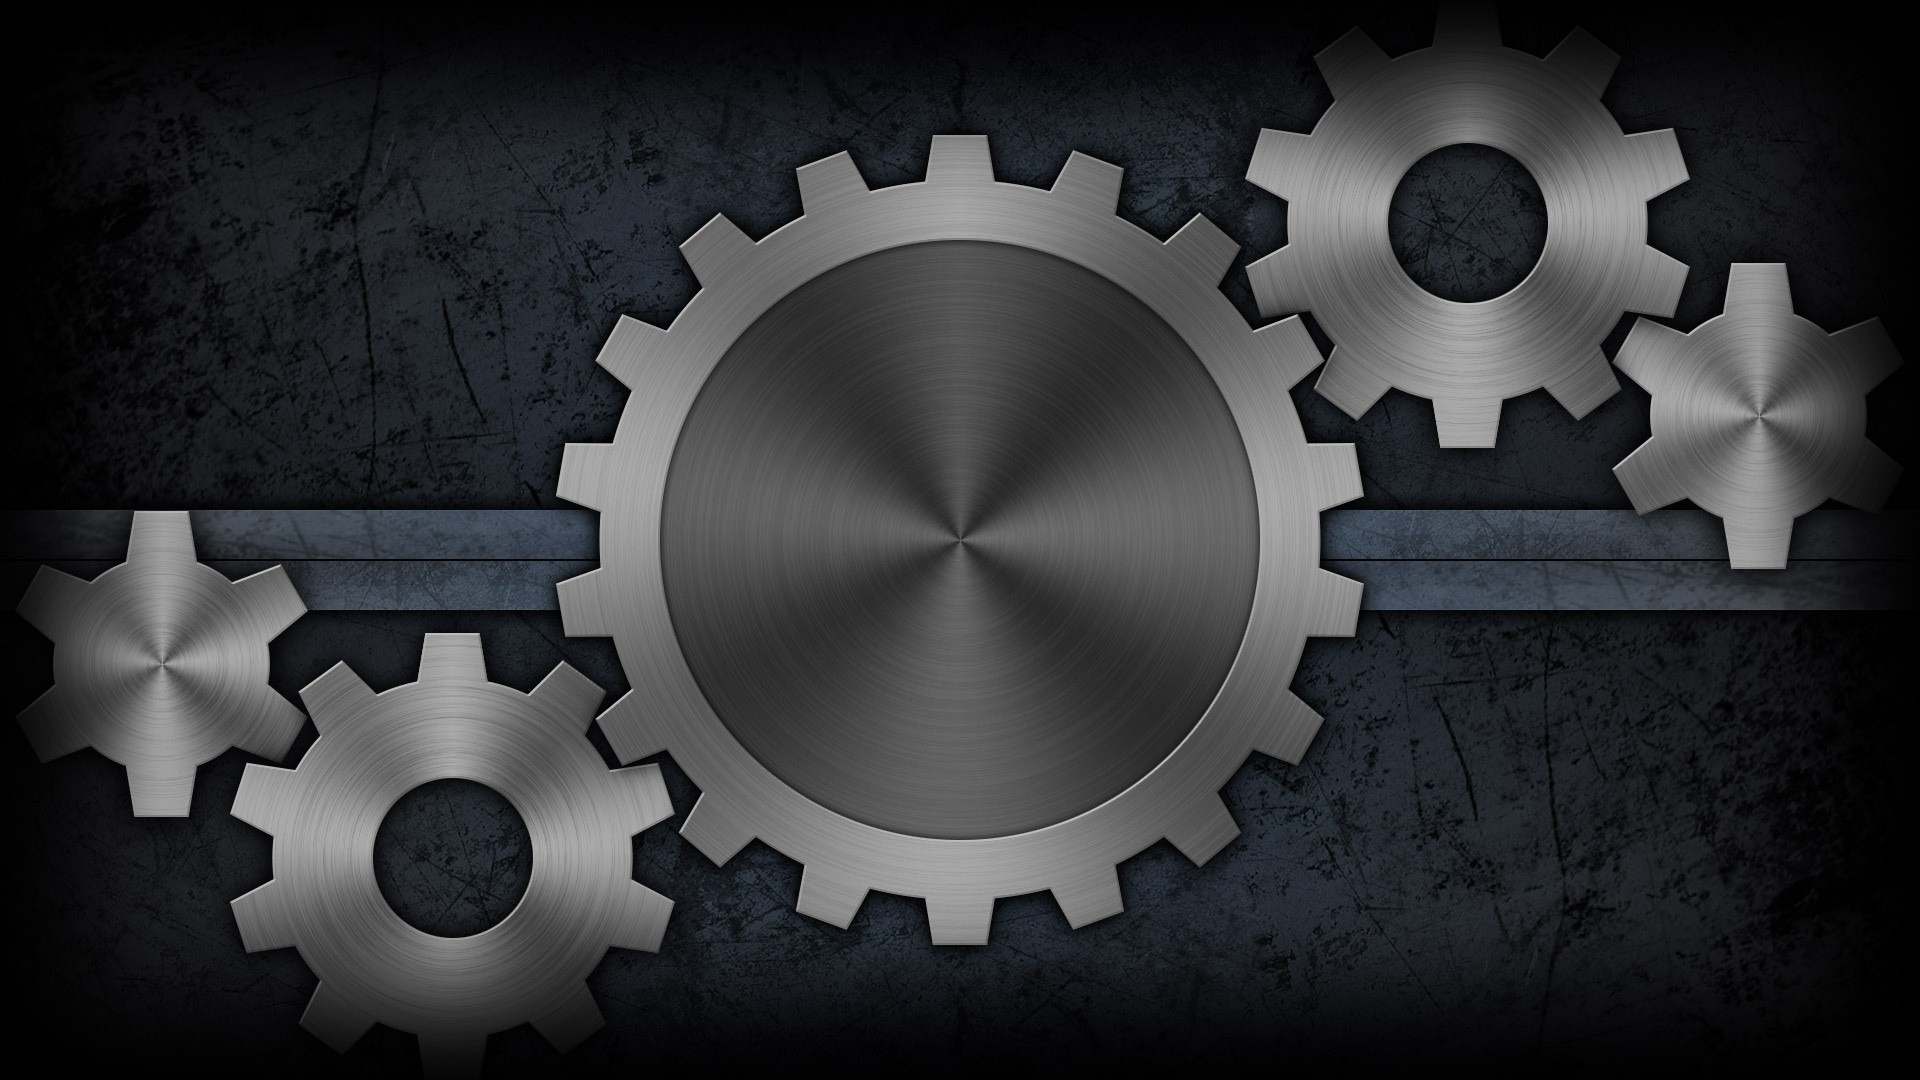 Steampunk Iphone Wallpaper Gears Background 183 ① Download Free Beautiful Hd Wallpapers